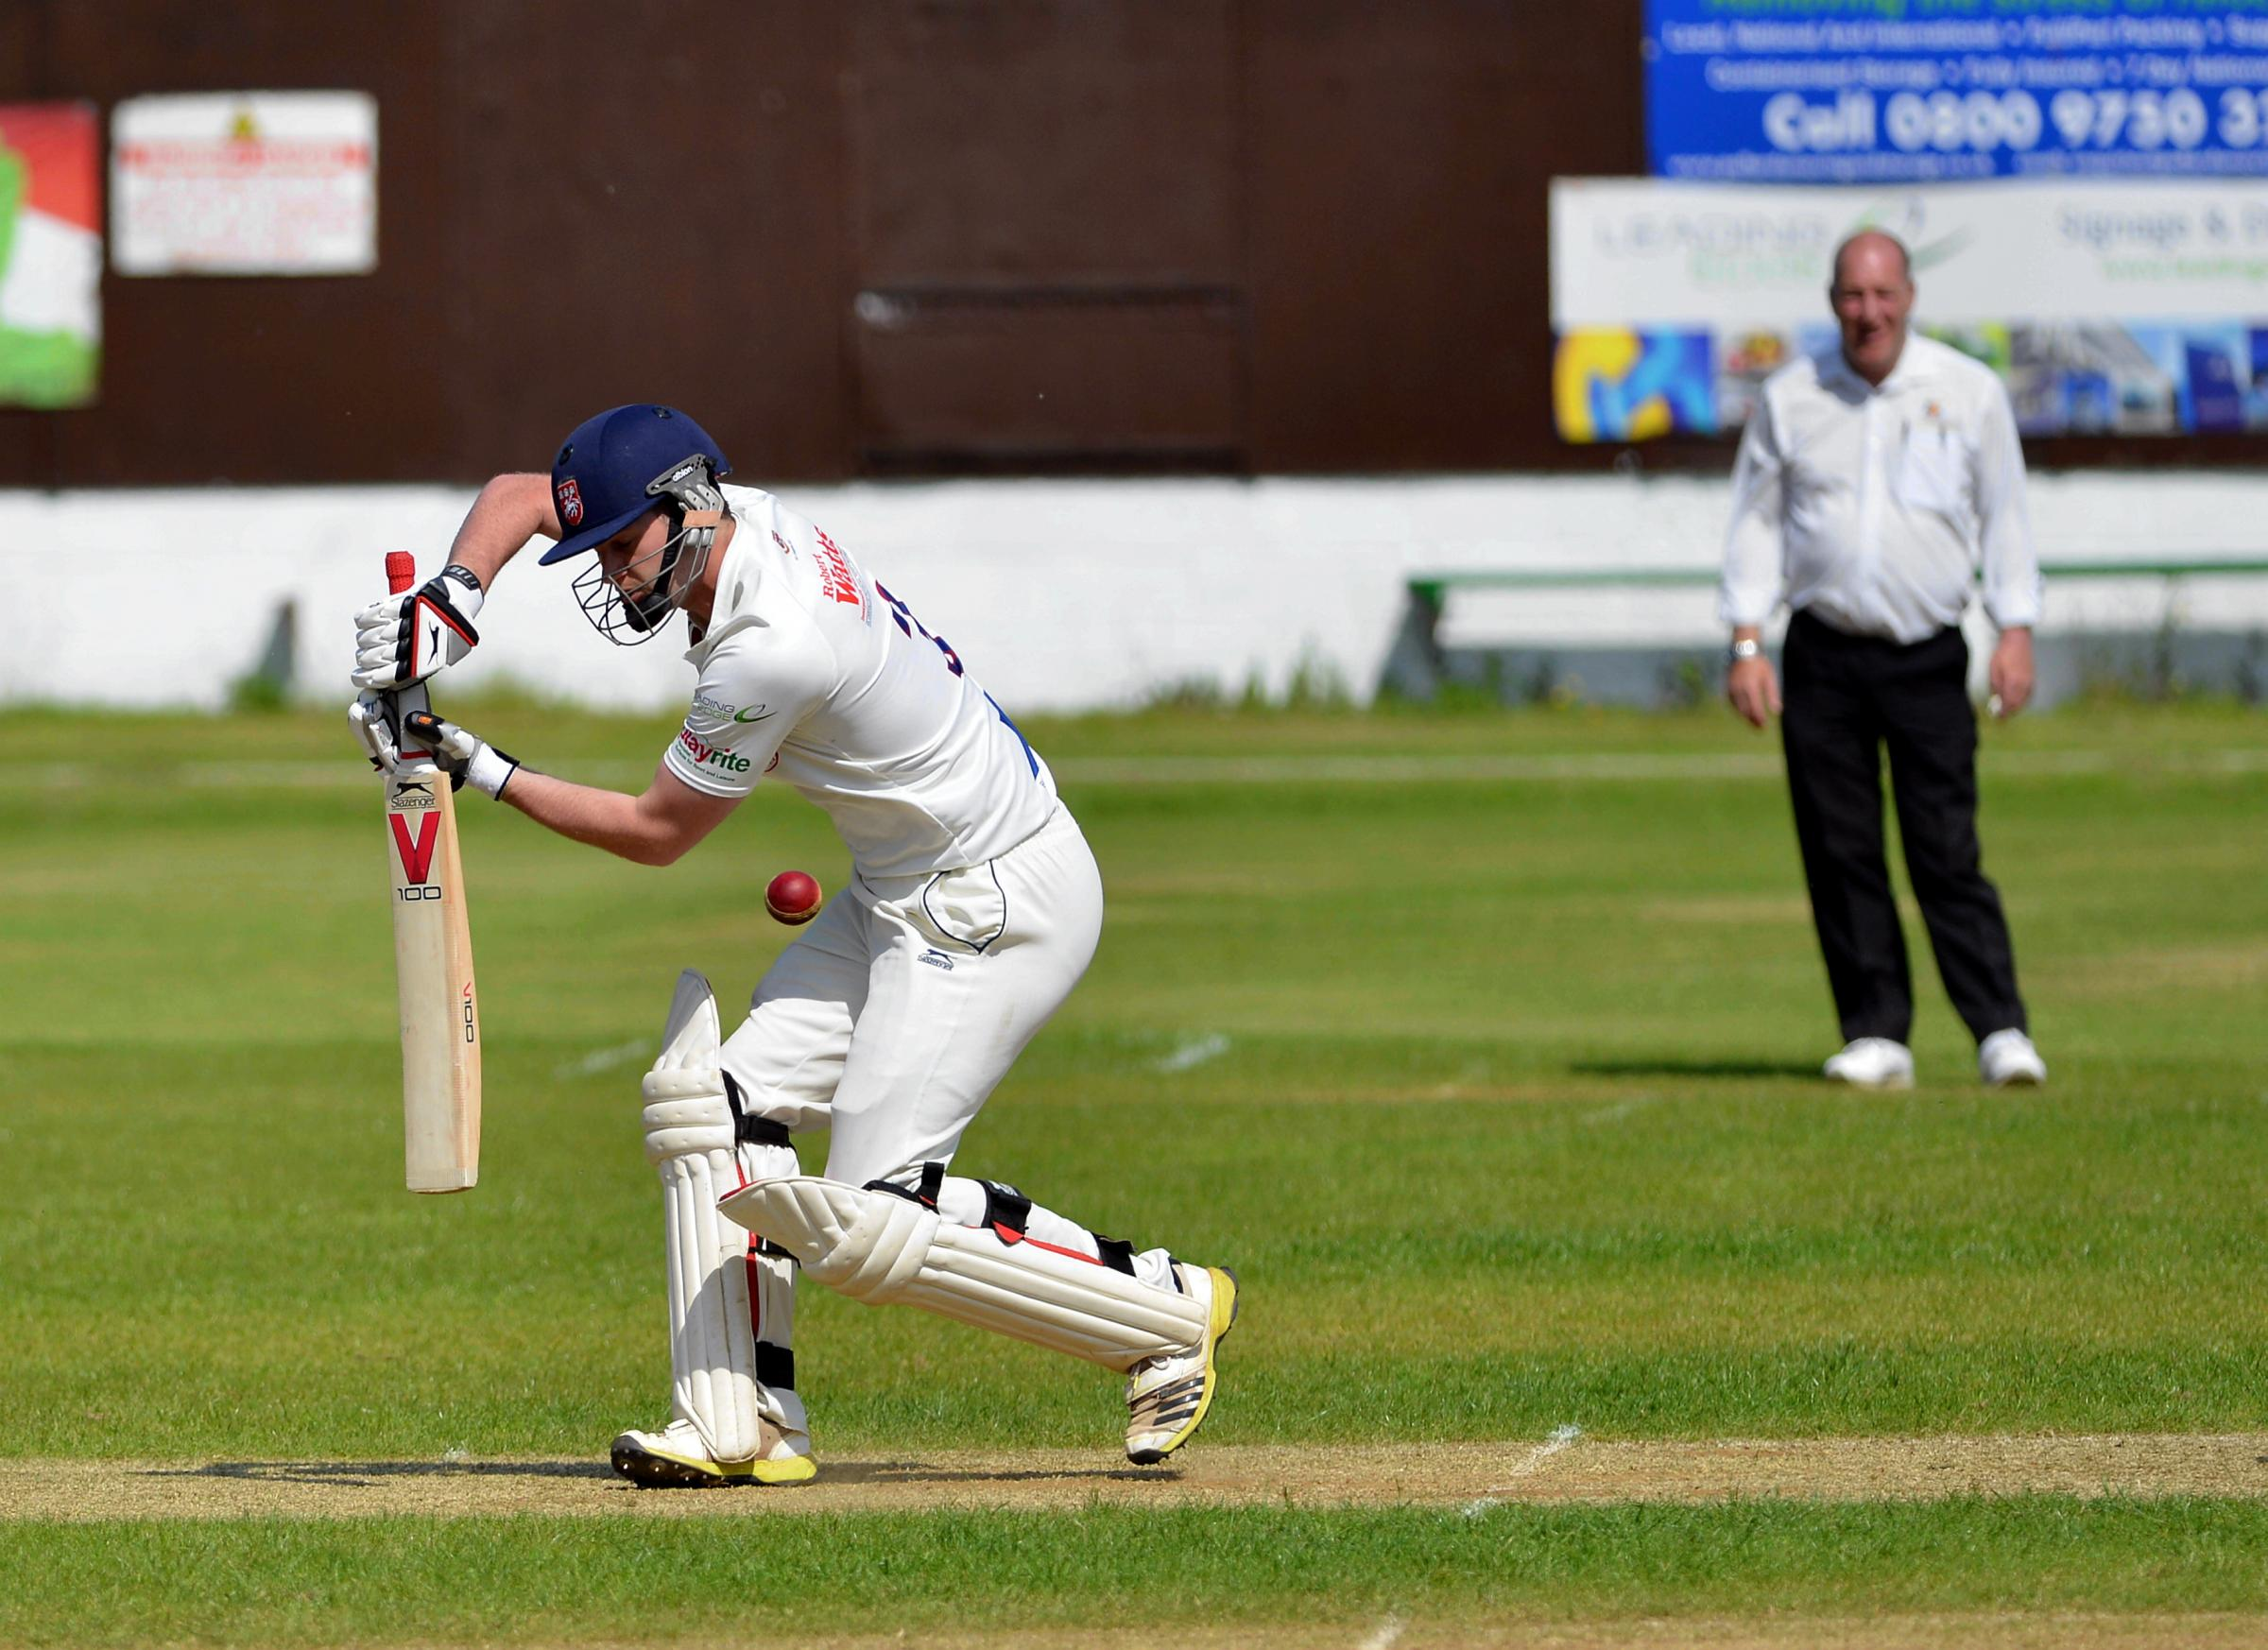 STRAIGHT BAT: Cleckheaton's James Lee in action against New Farnley